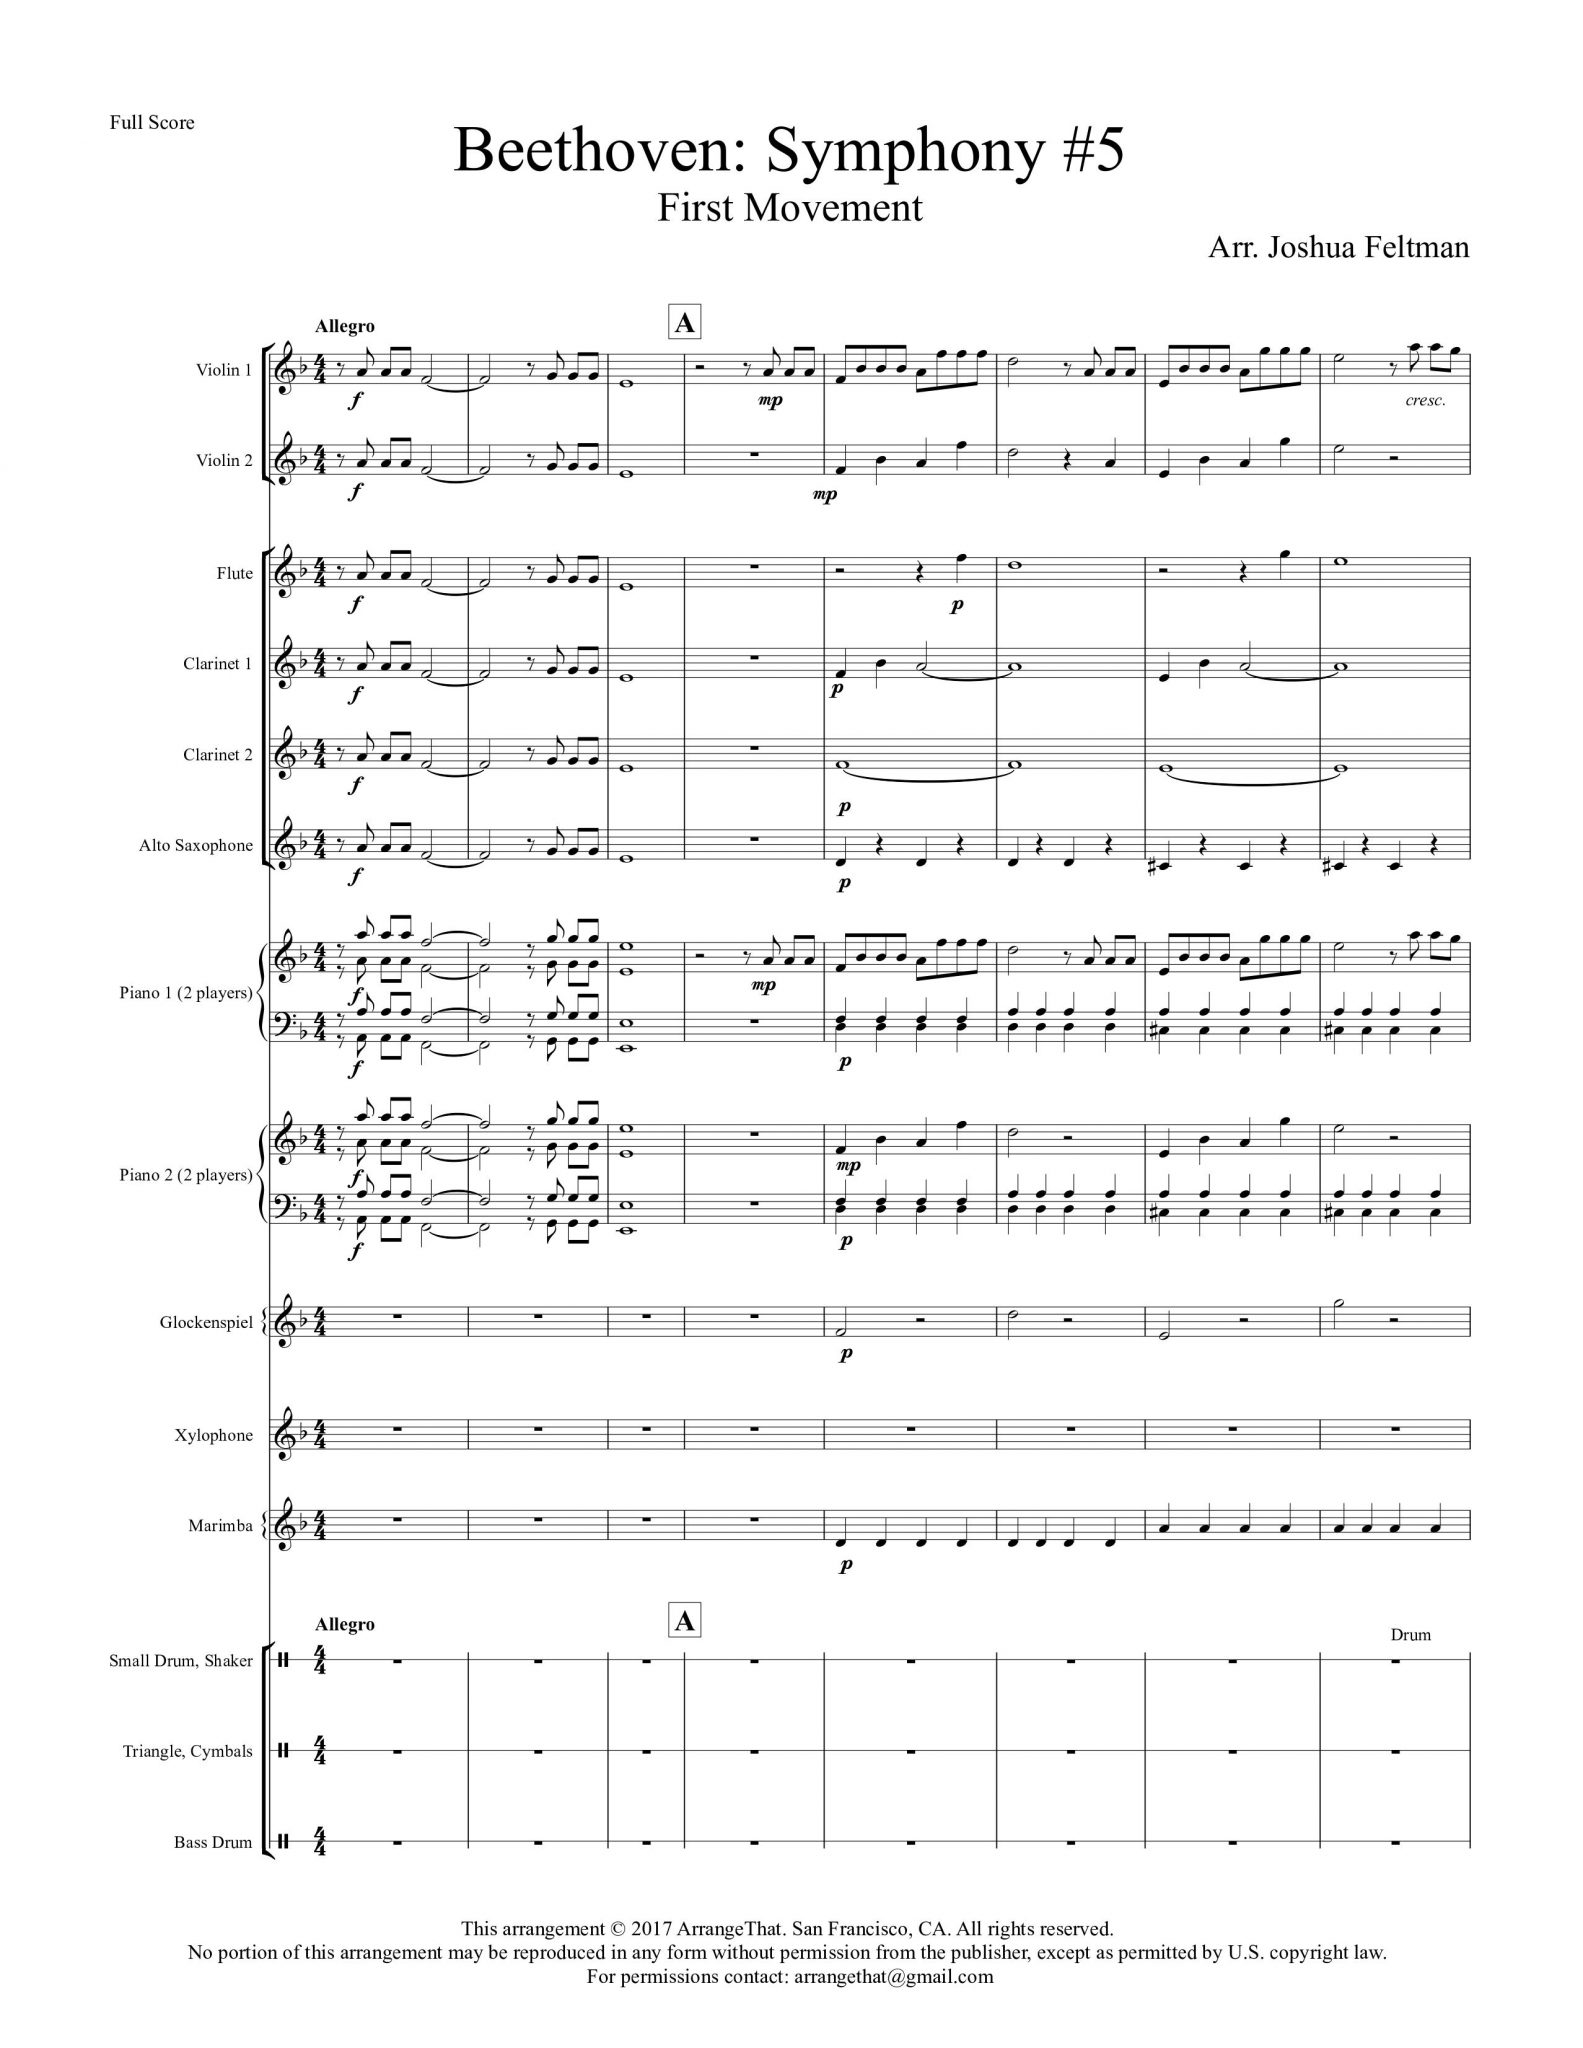 5Th Symphony beethoven: symphony #5, first movement